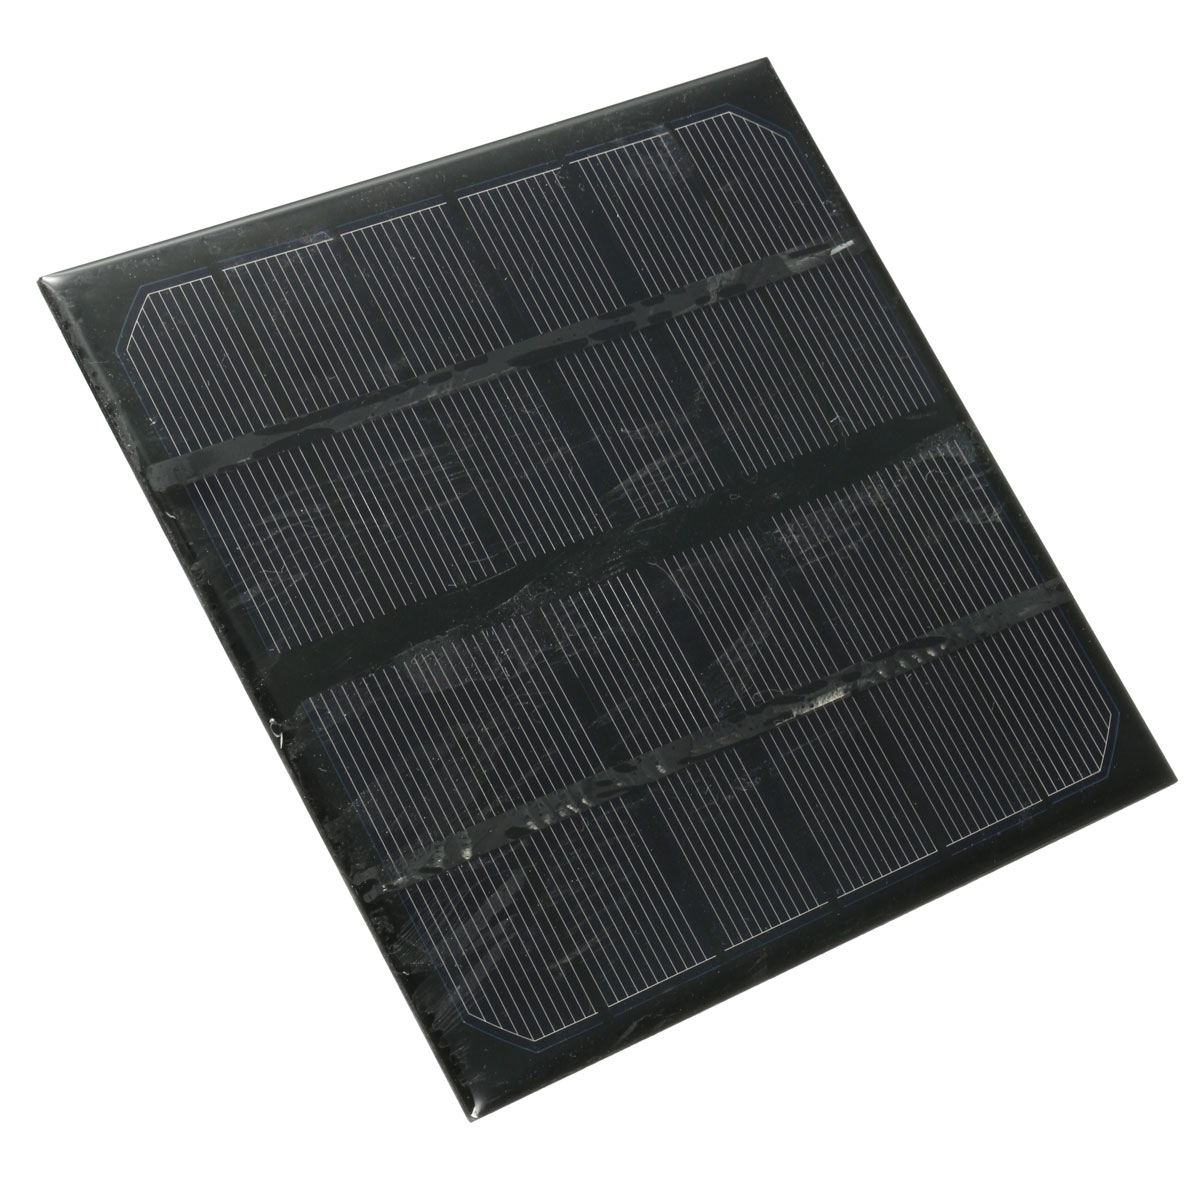 LEORY 3W 6V Solar Panel DIY Battery Charger Power Bank MINI 145*145*3mm Solar Cell For System Supply